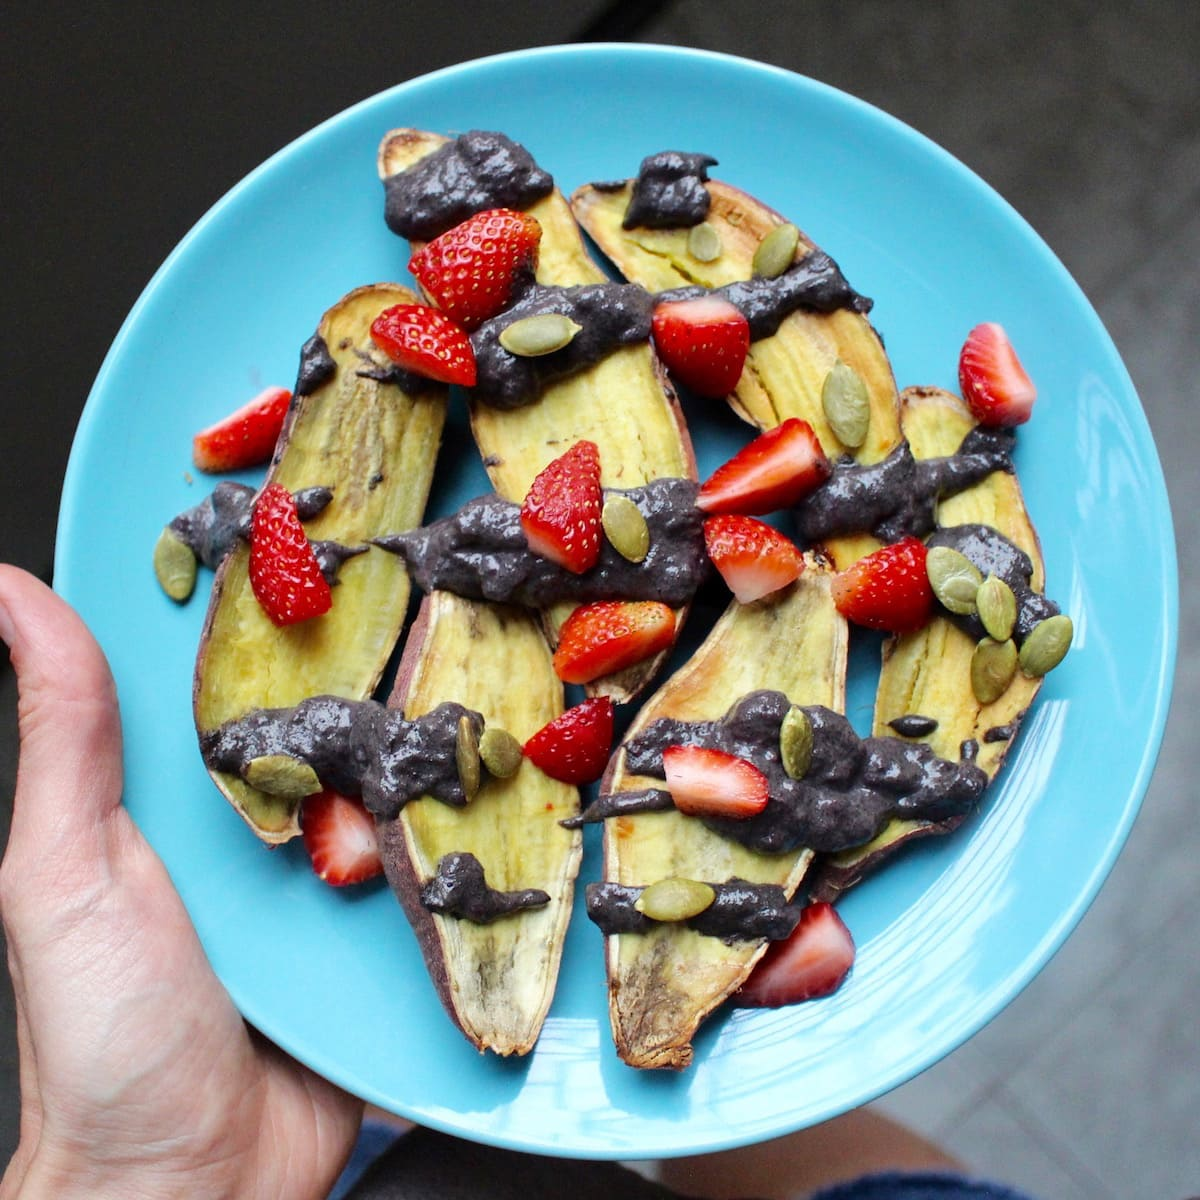 sweet potatoes topped with black tahini and berries